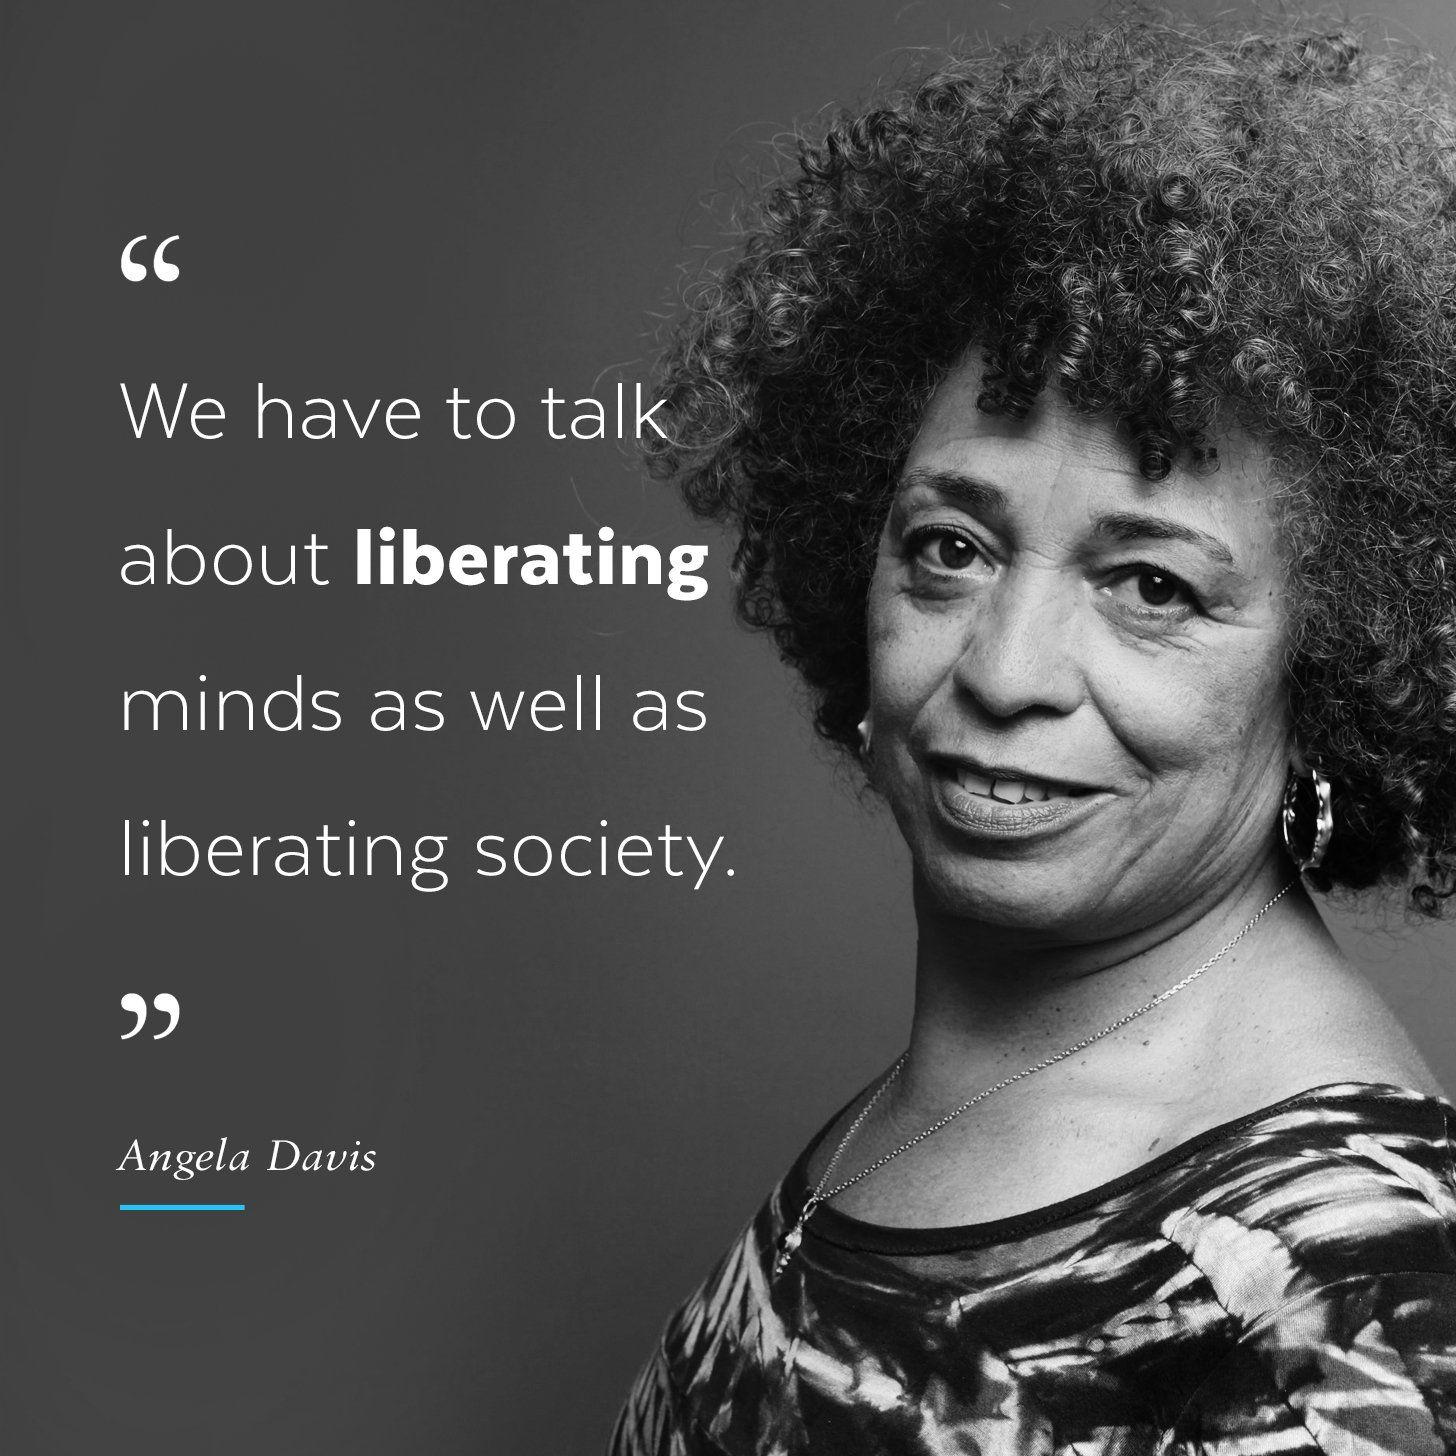 Famous Inspirational Quotes Life 15 Inspirational Quotes To Commemorate Black History Month